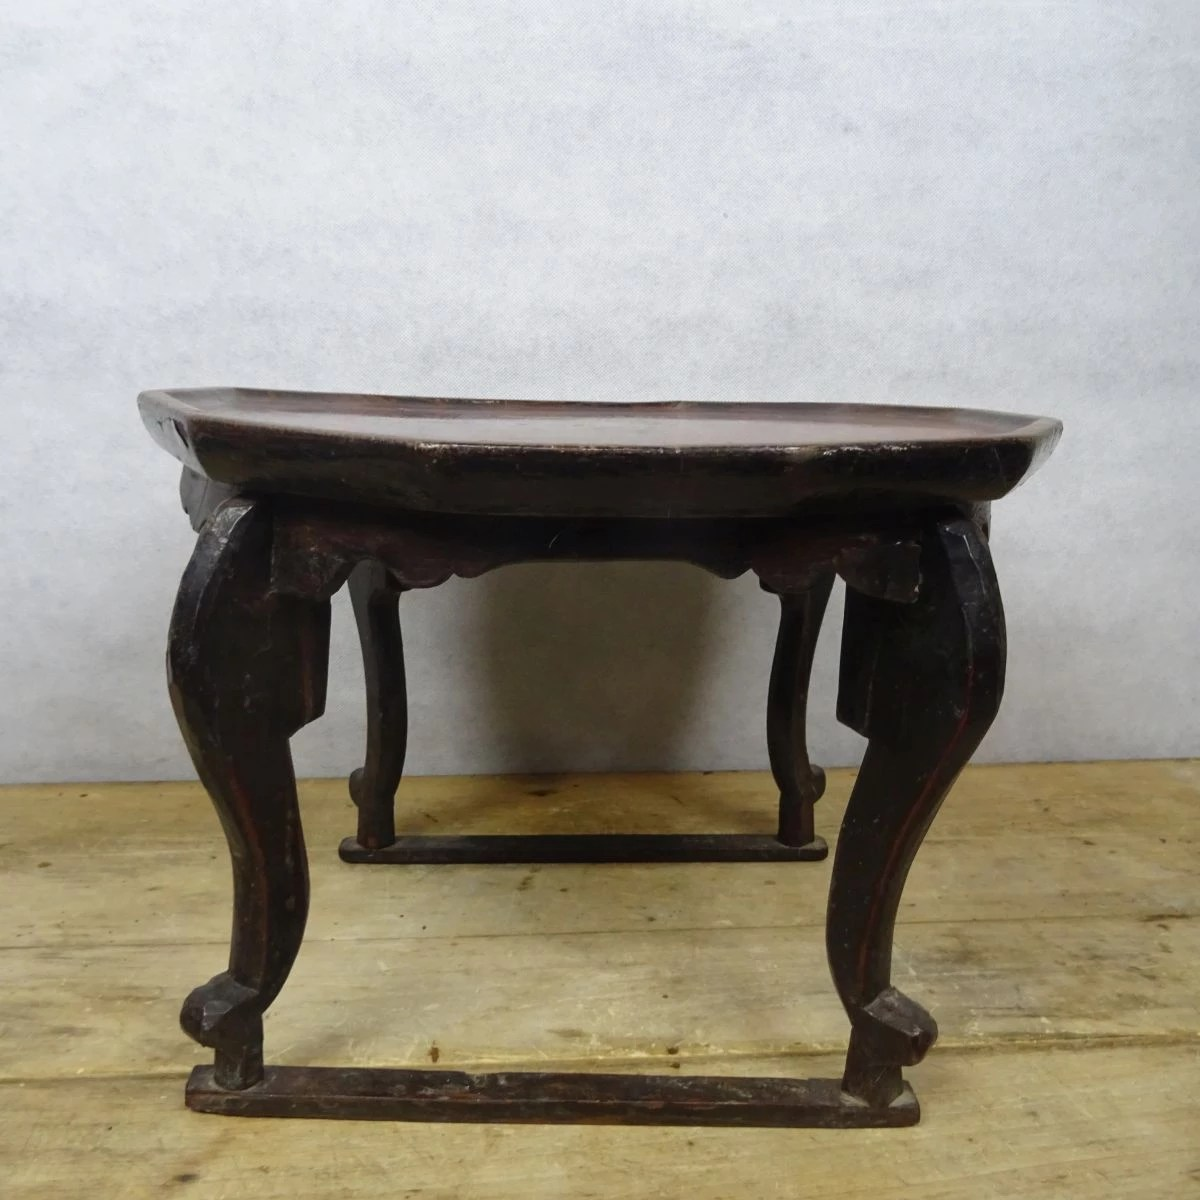 petite table chinoise ancienne bois